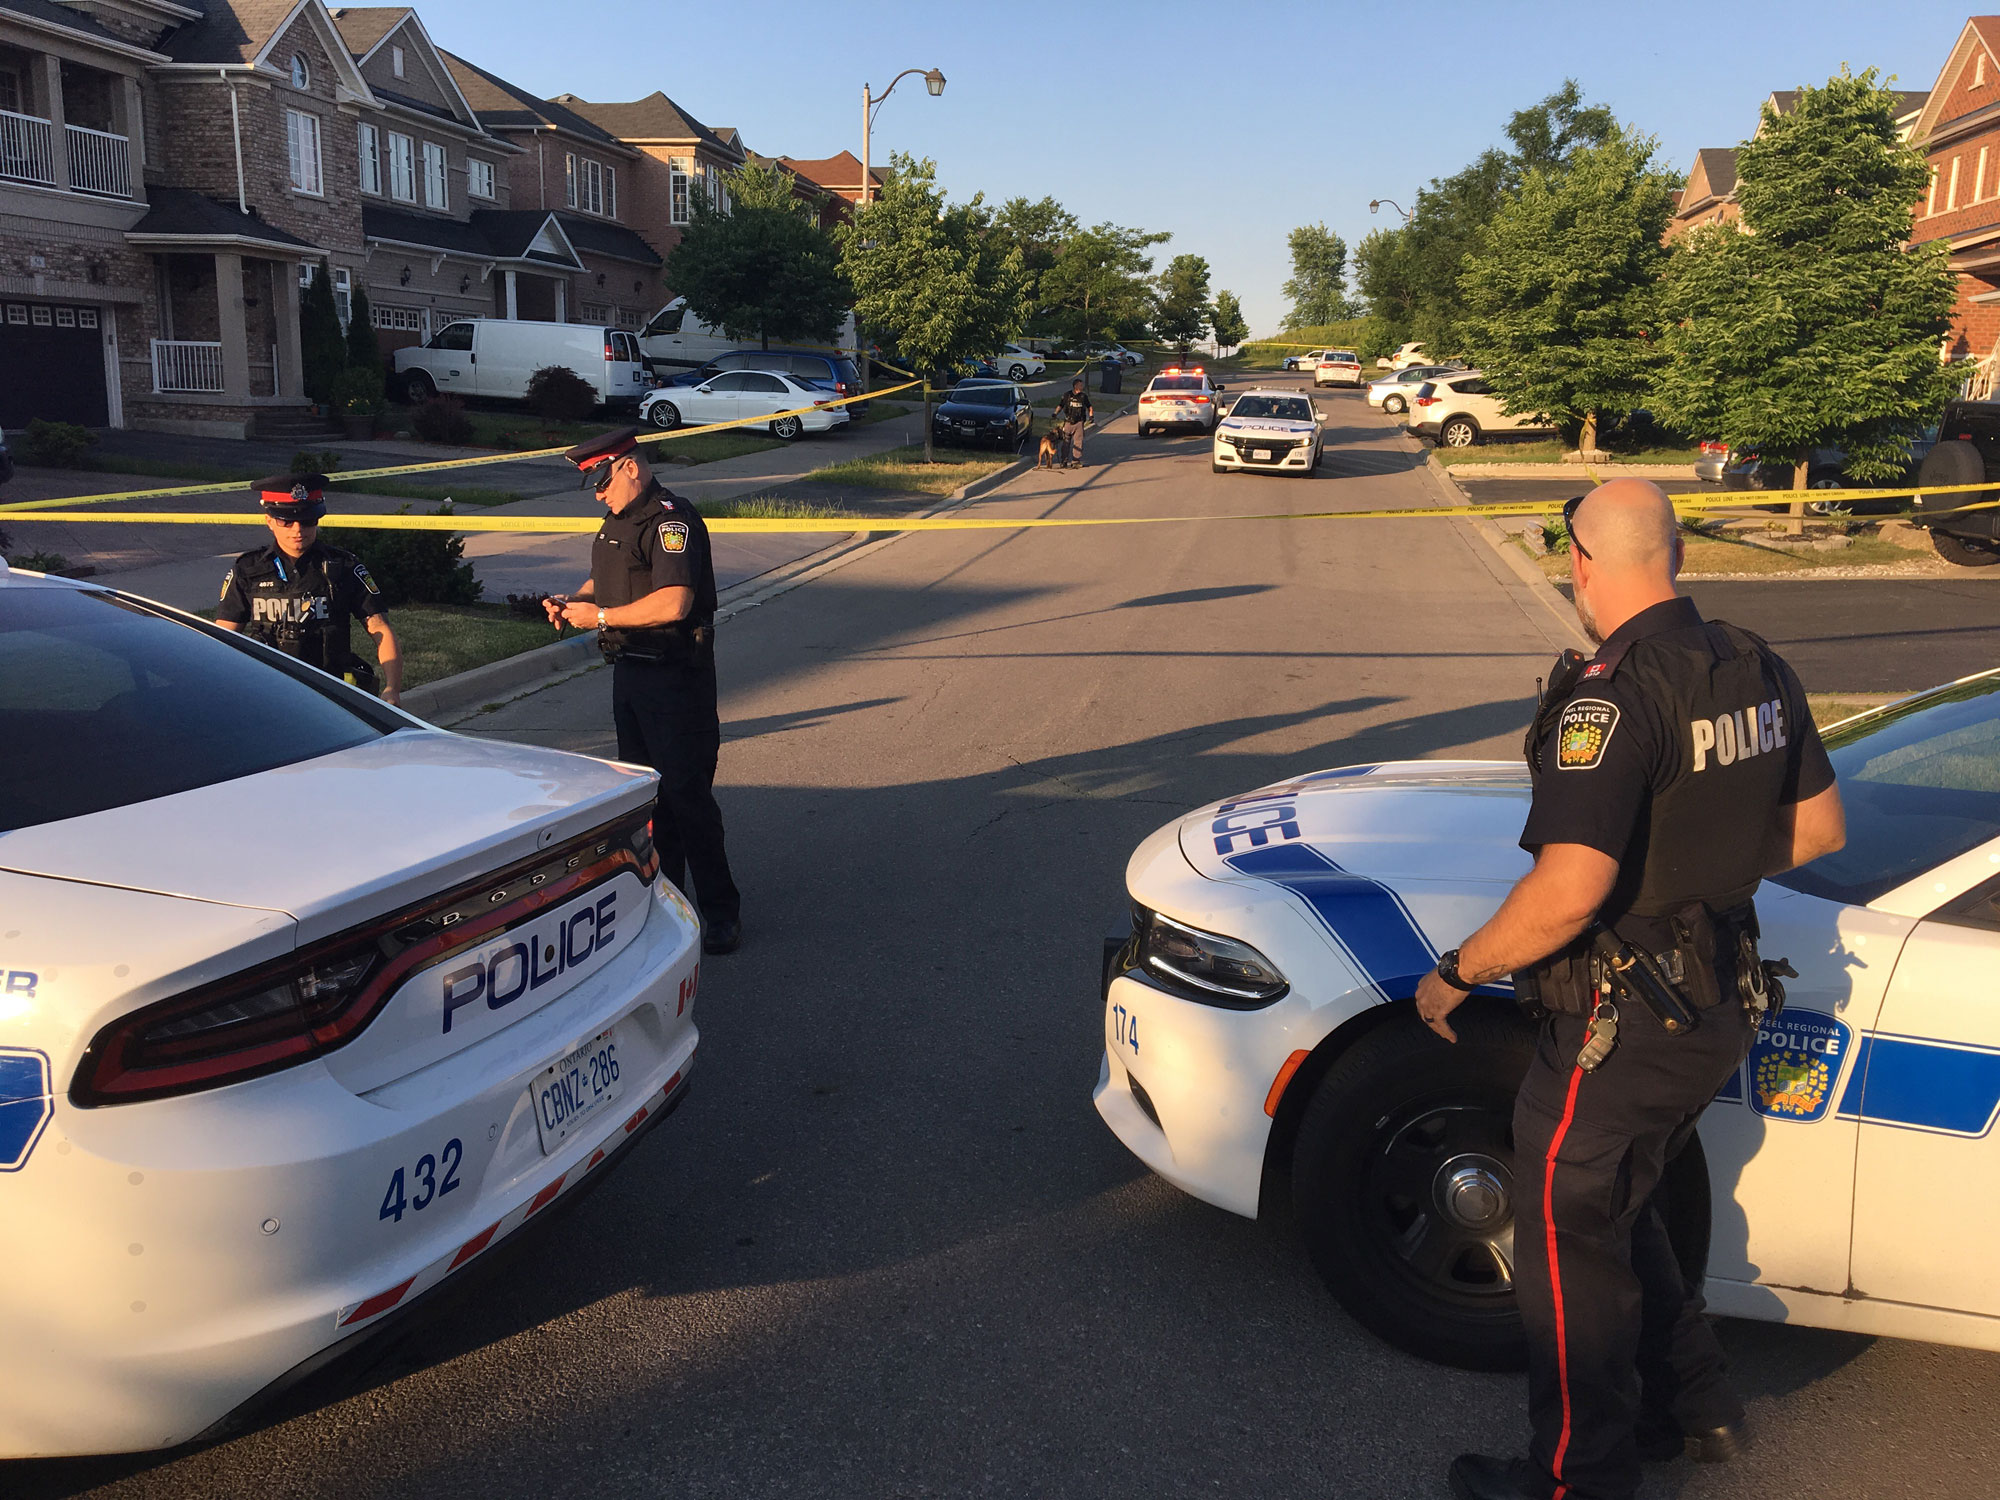 Peel police investigate a fatal shooting on Martree Crescent in Brampton on June 21, 2018. CITYNEWS/Mehrdad Nazarahari